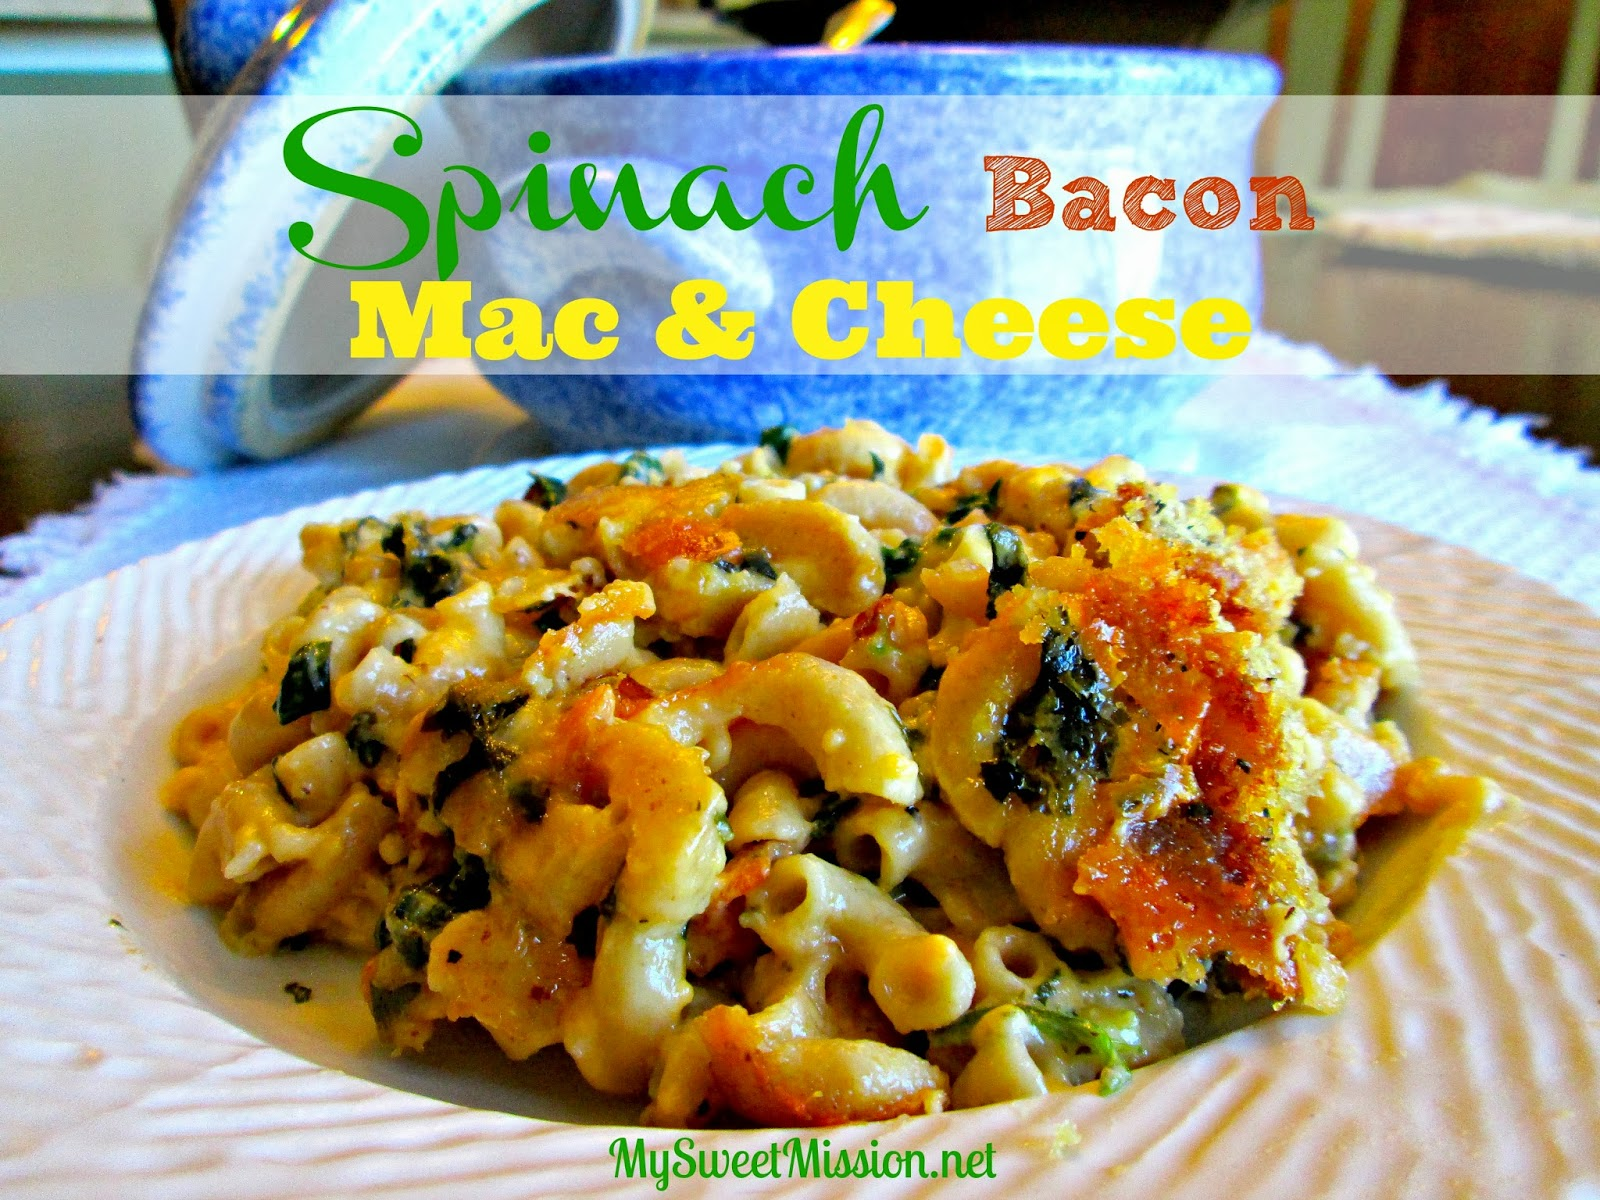 Savory Spinach Bacon Mac & Cheese with a crunchy topping!